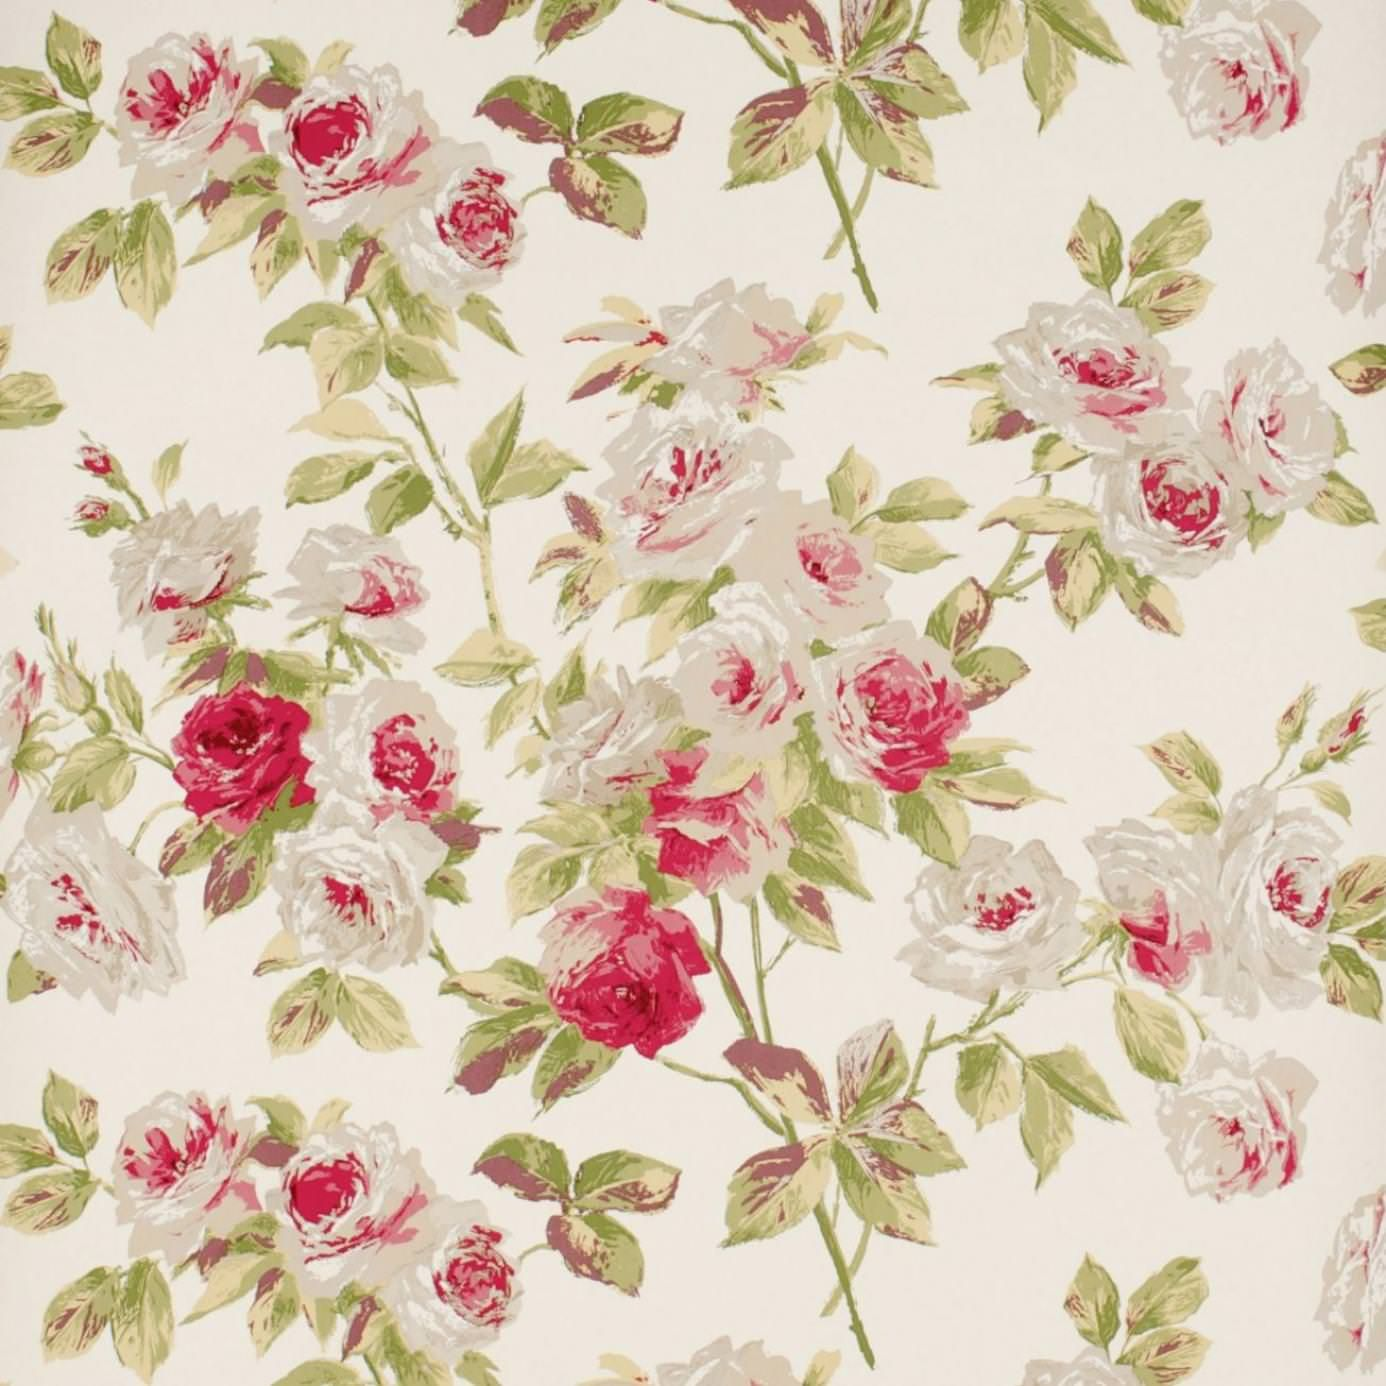 Download 15 Free Floral Vintage Wallpapers Flowery Wallpaper